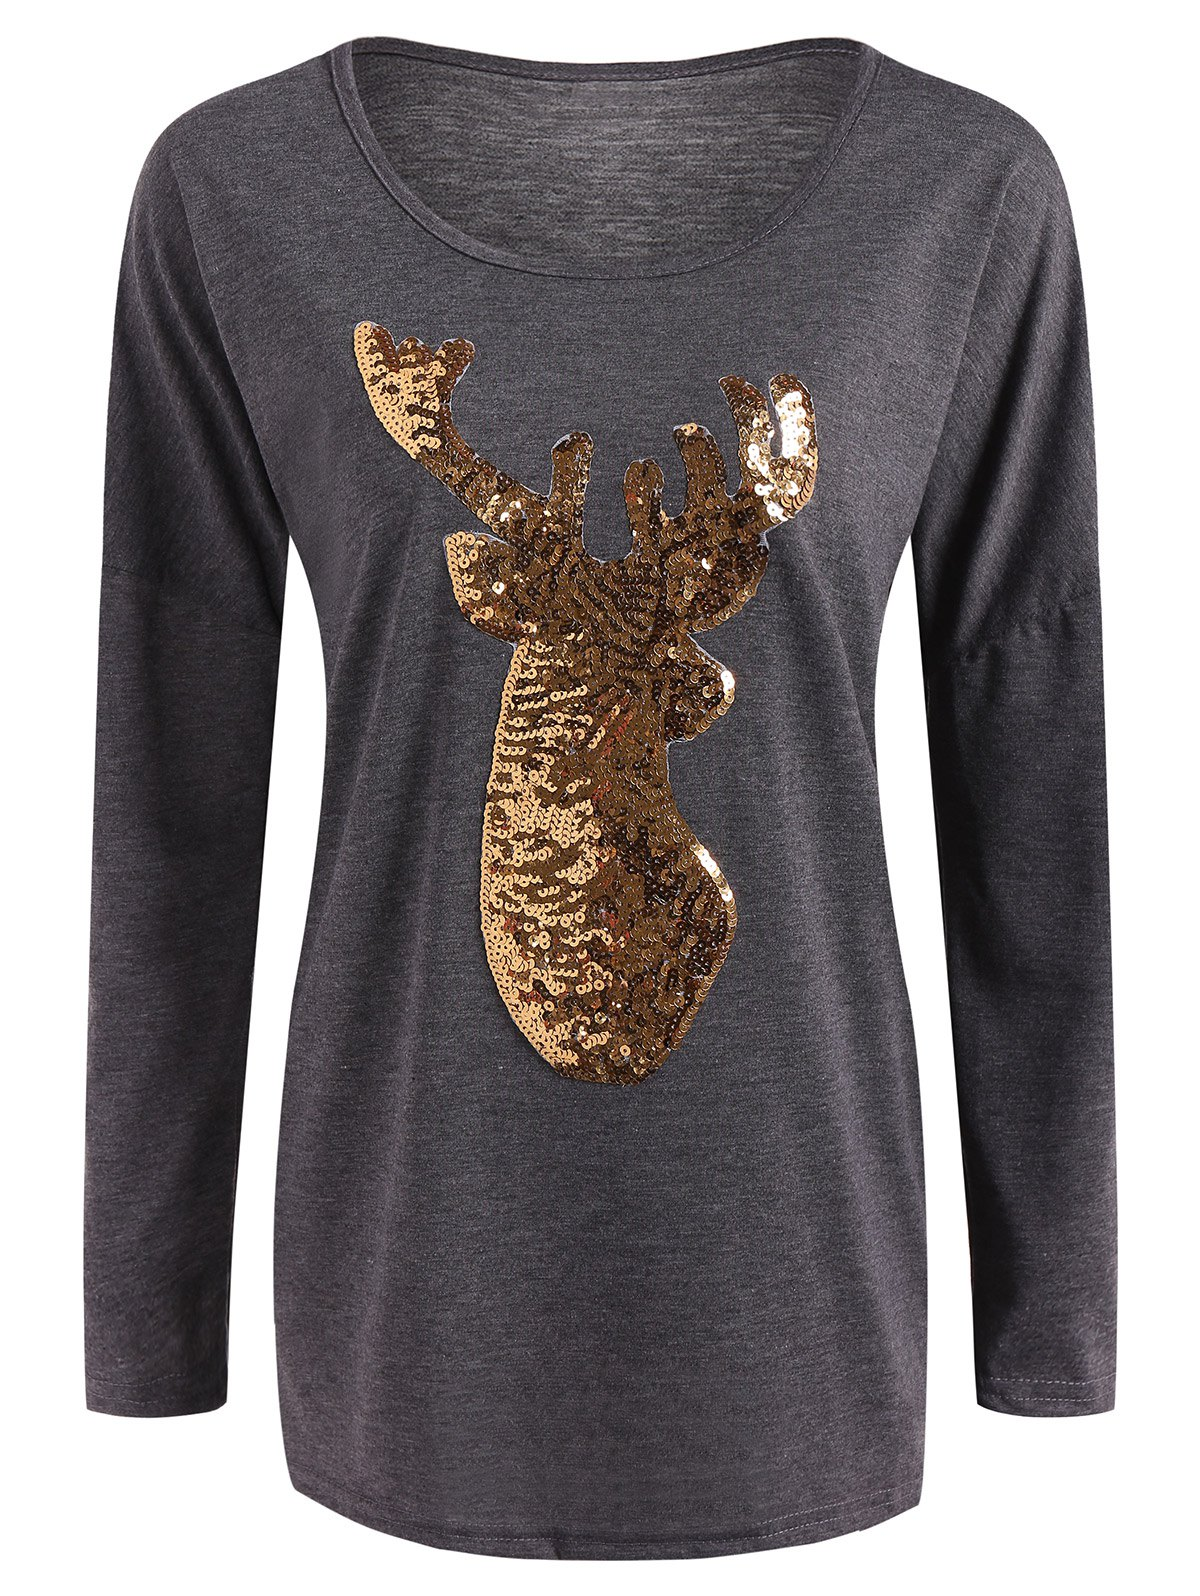 Christmas Reindeer Sequin Long Sleeve T-ShirtWOMEN<br><br>Size: L; Color: GRAY; Material: Polyester; Sleeve Length: Full; Collar: Scoop Neck; Style: Casual; Embellishment: Sequins; Pattern Type: Animal; Season: Fall,Spring,Winter; Elasticity: Elastic; Weight: 0.370kg; Package Contents: 1 x T Shirt;